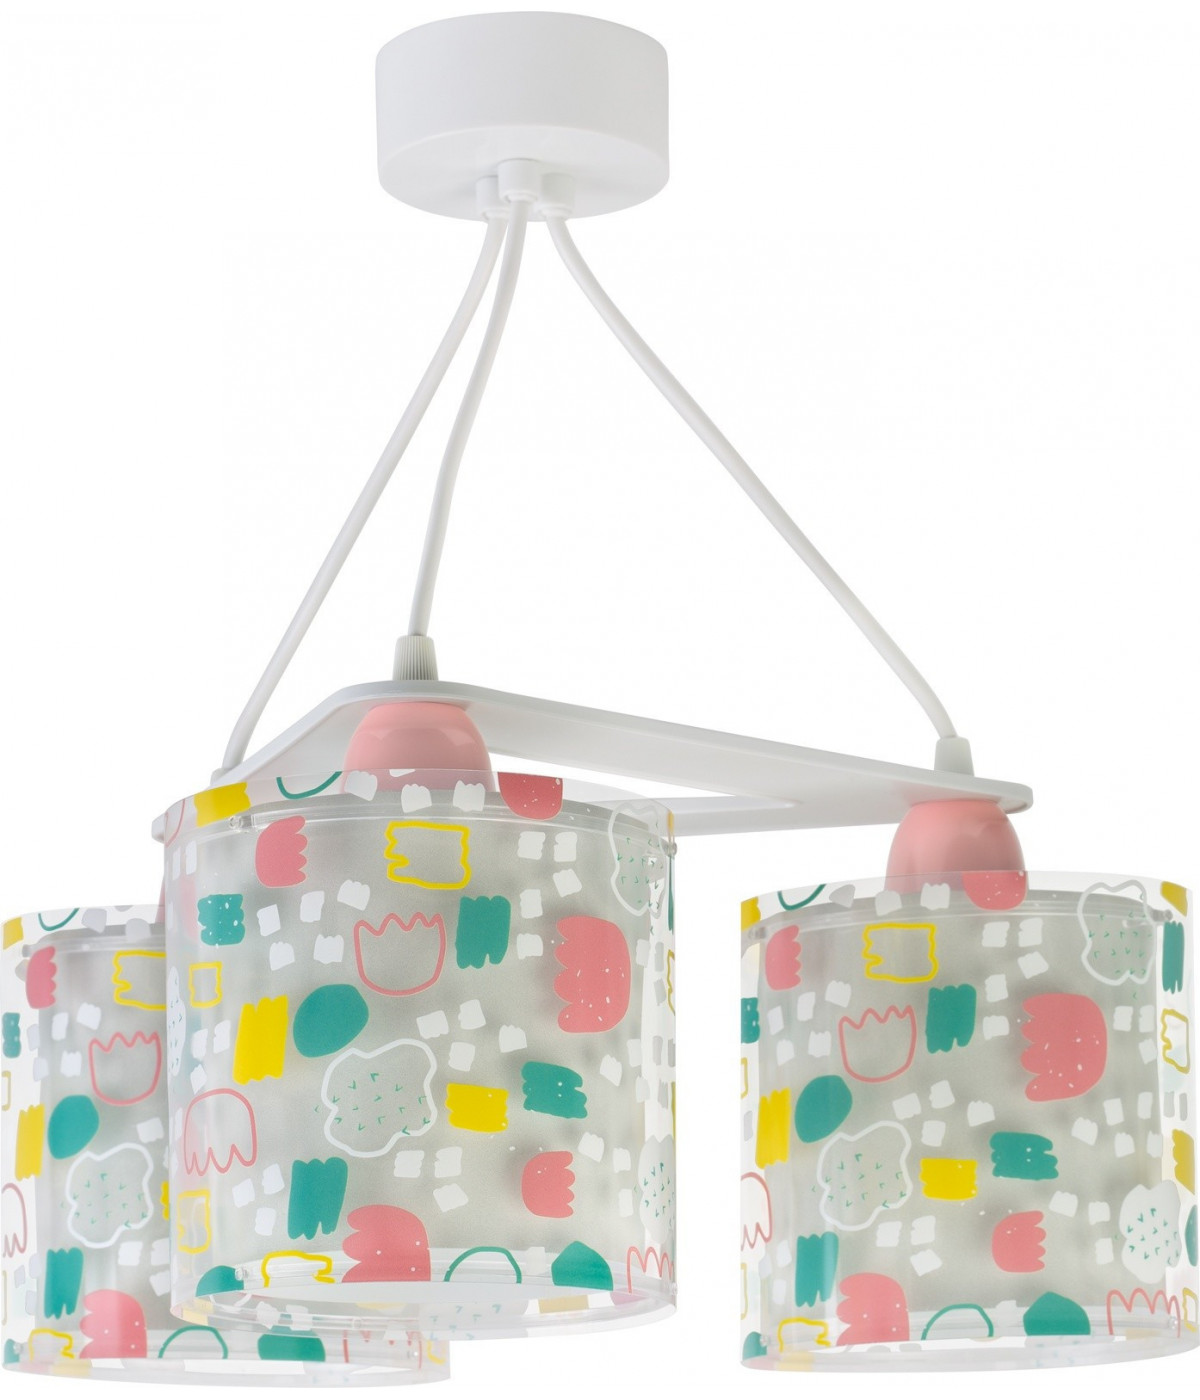 3 light hanging lamp for kids Secrets